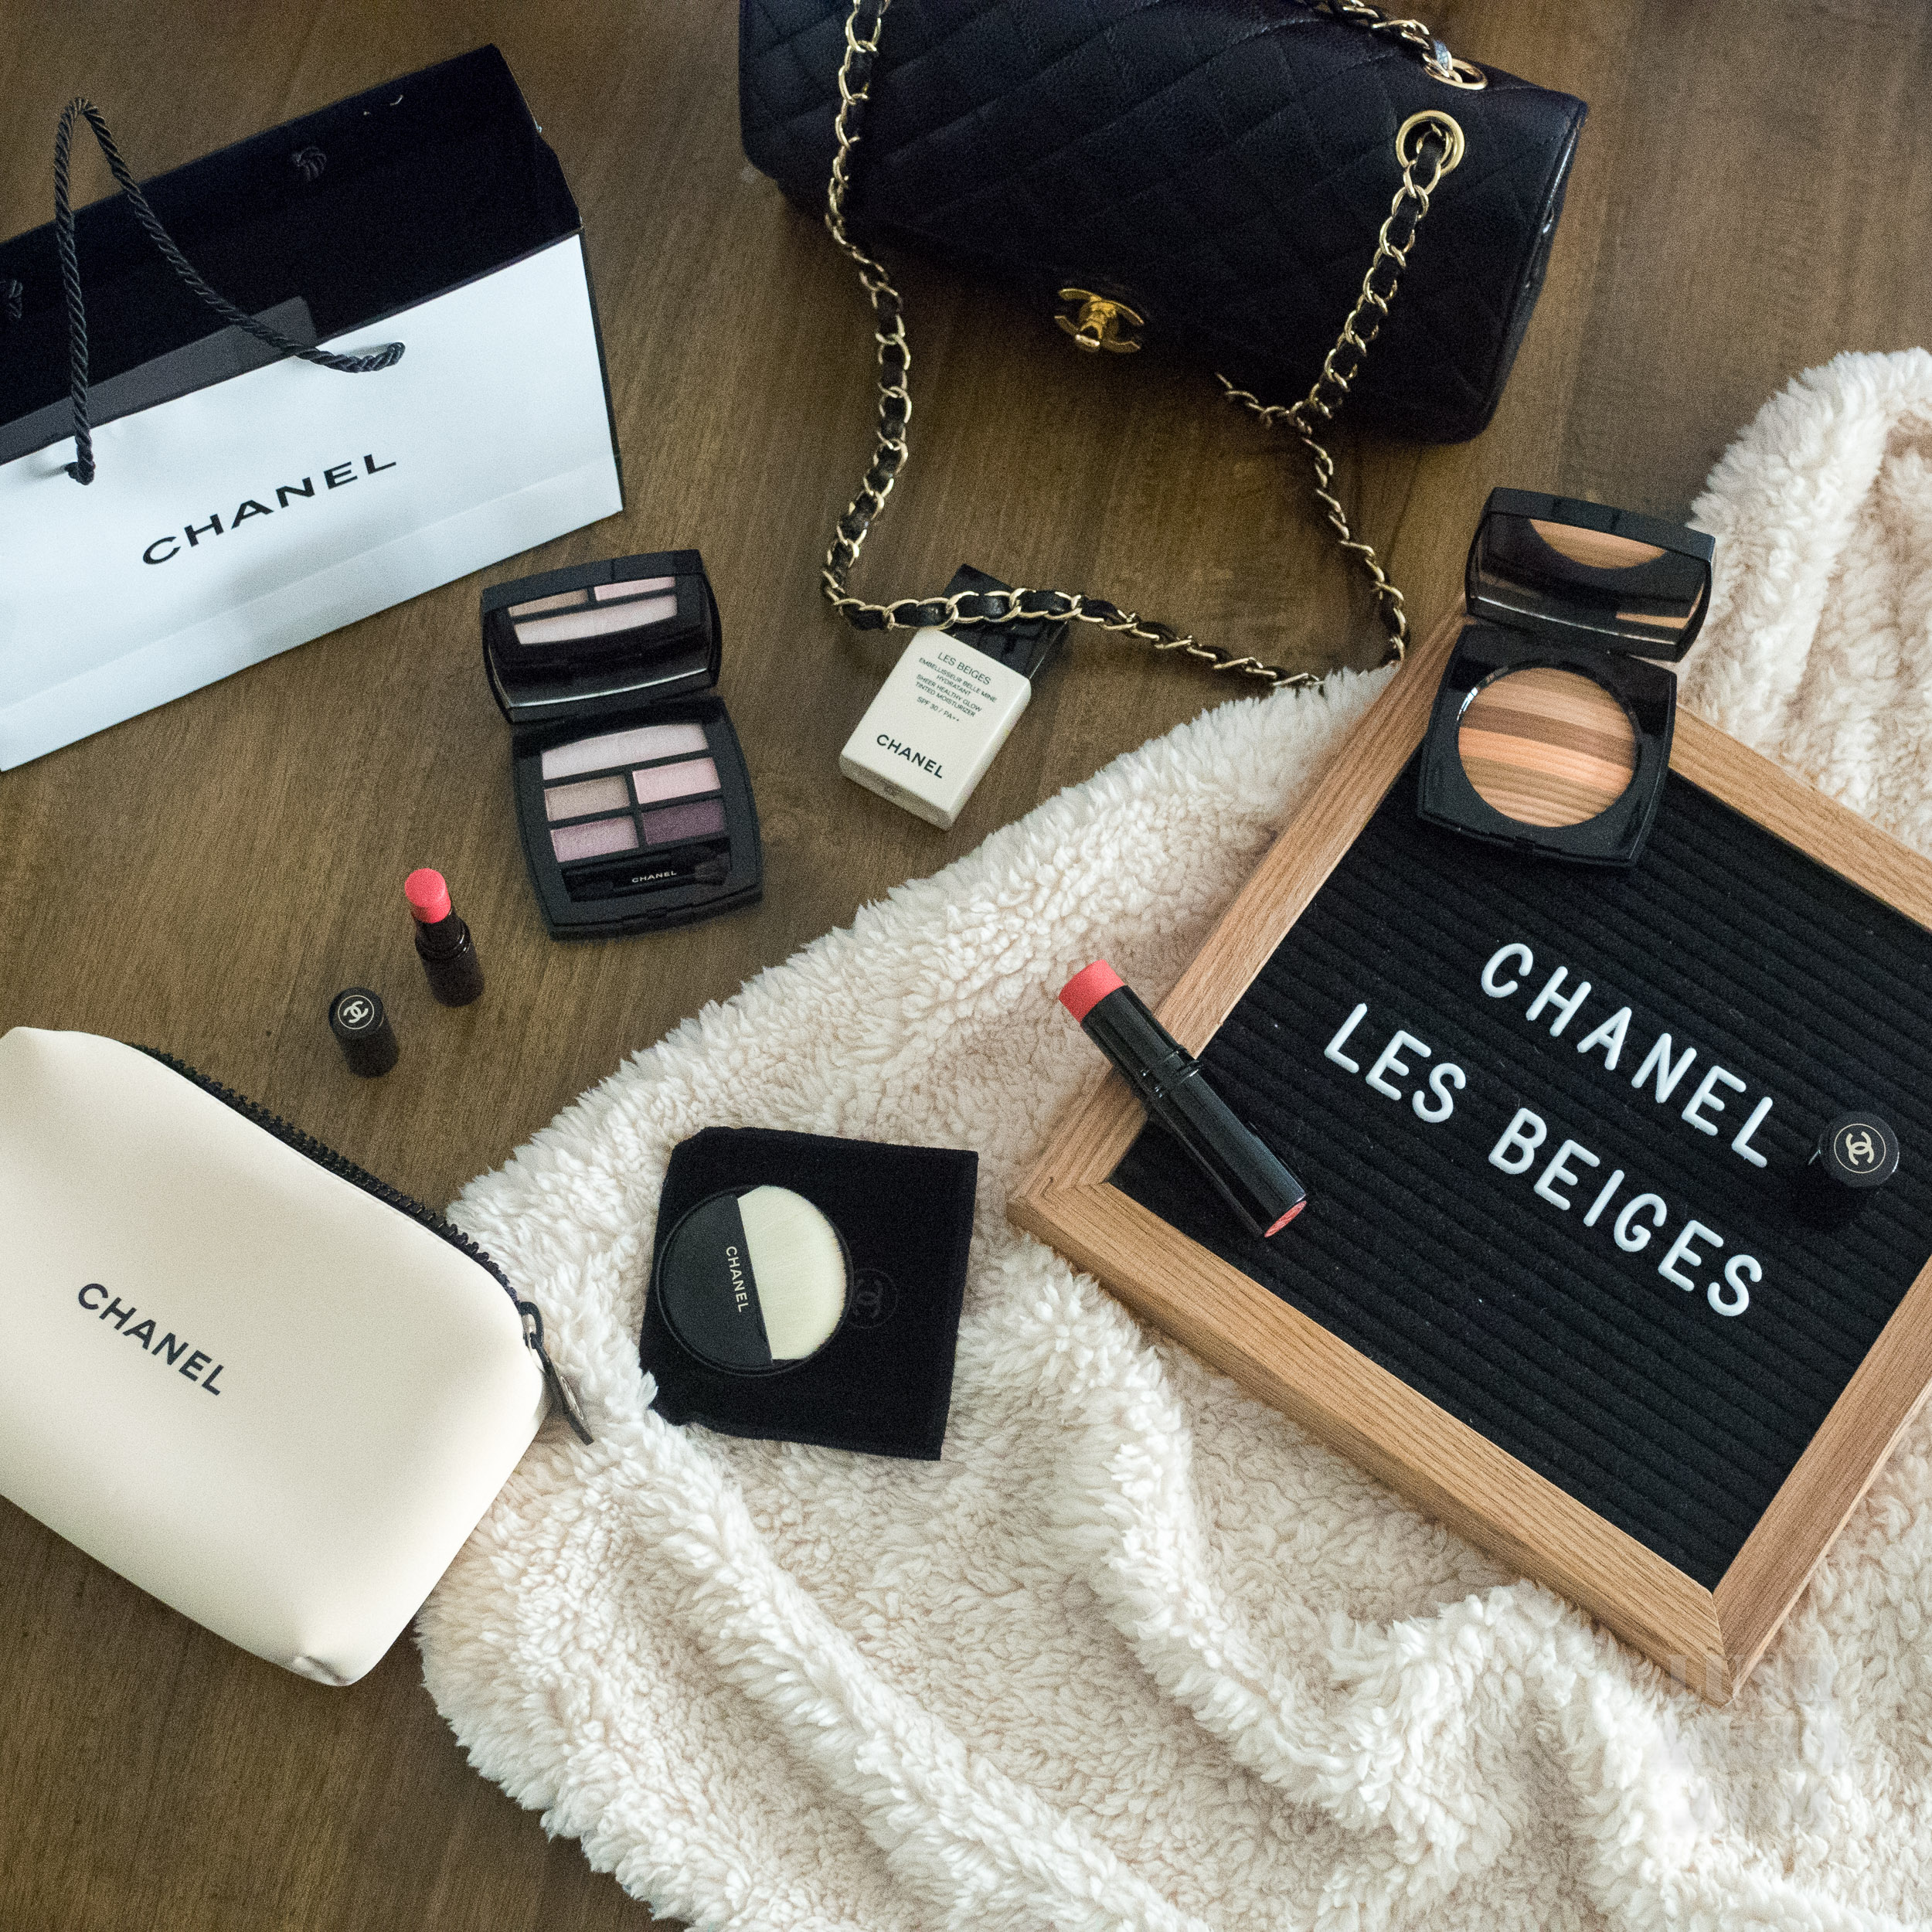 4bb9c2ca4eea Achieving Healthy Glow with Chanel Les Beiges + Prices | Lush Angel